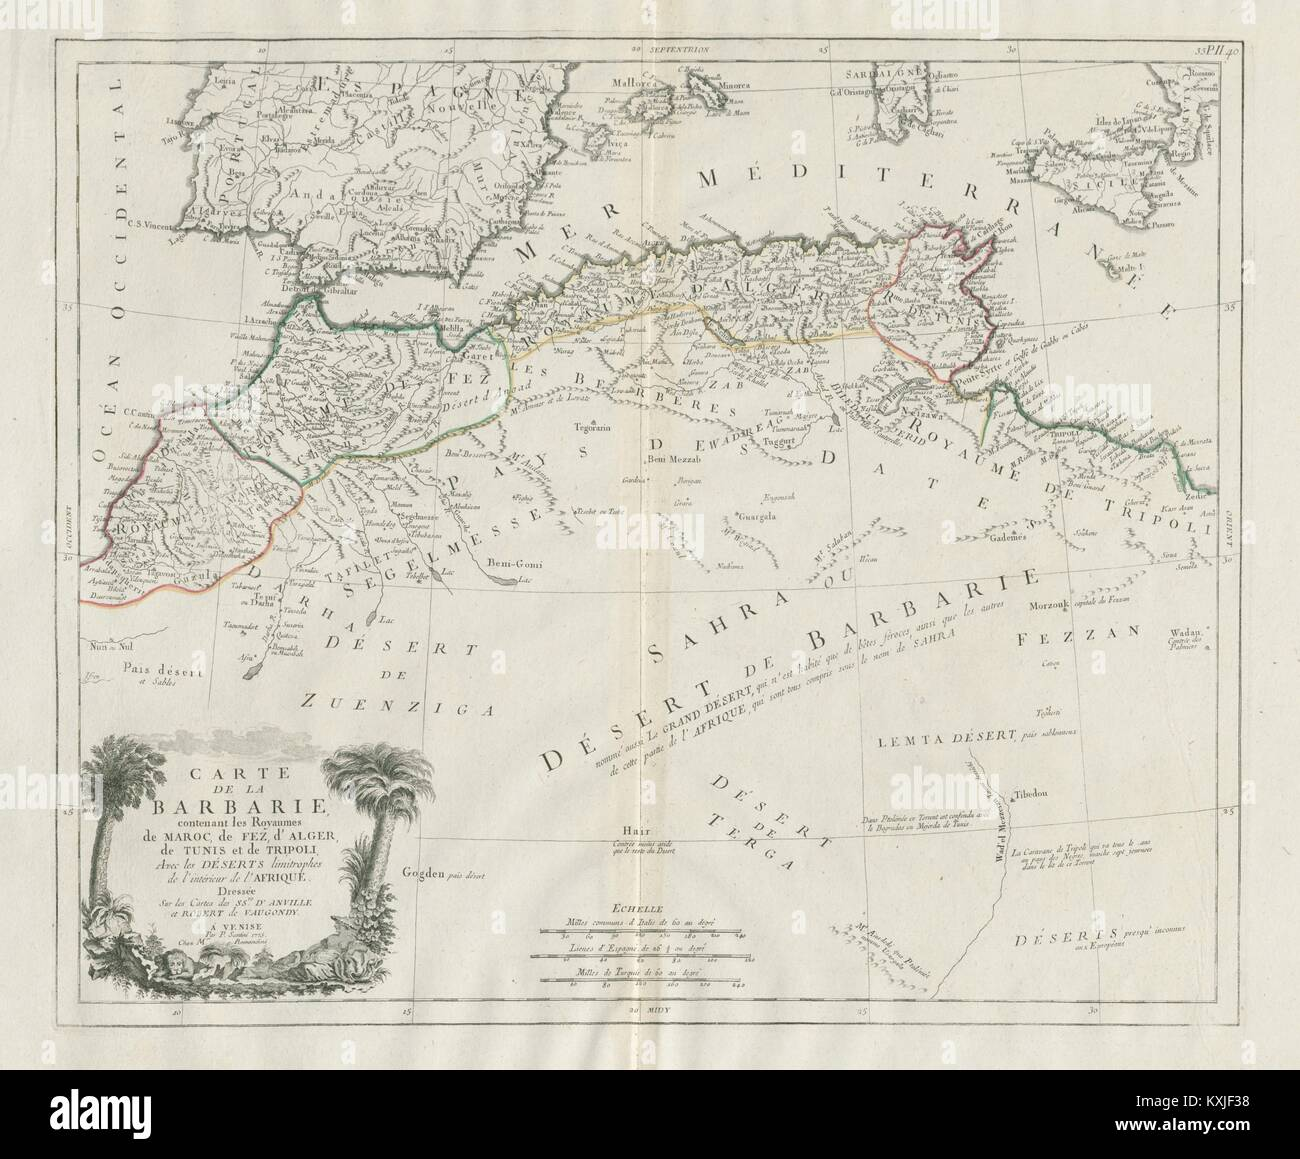 Map Of Spain And North Africa.Carte De La Barbarie North Africa Spain Santini Vaugondy 1784